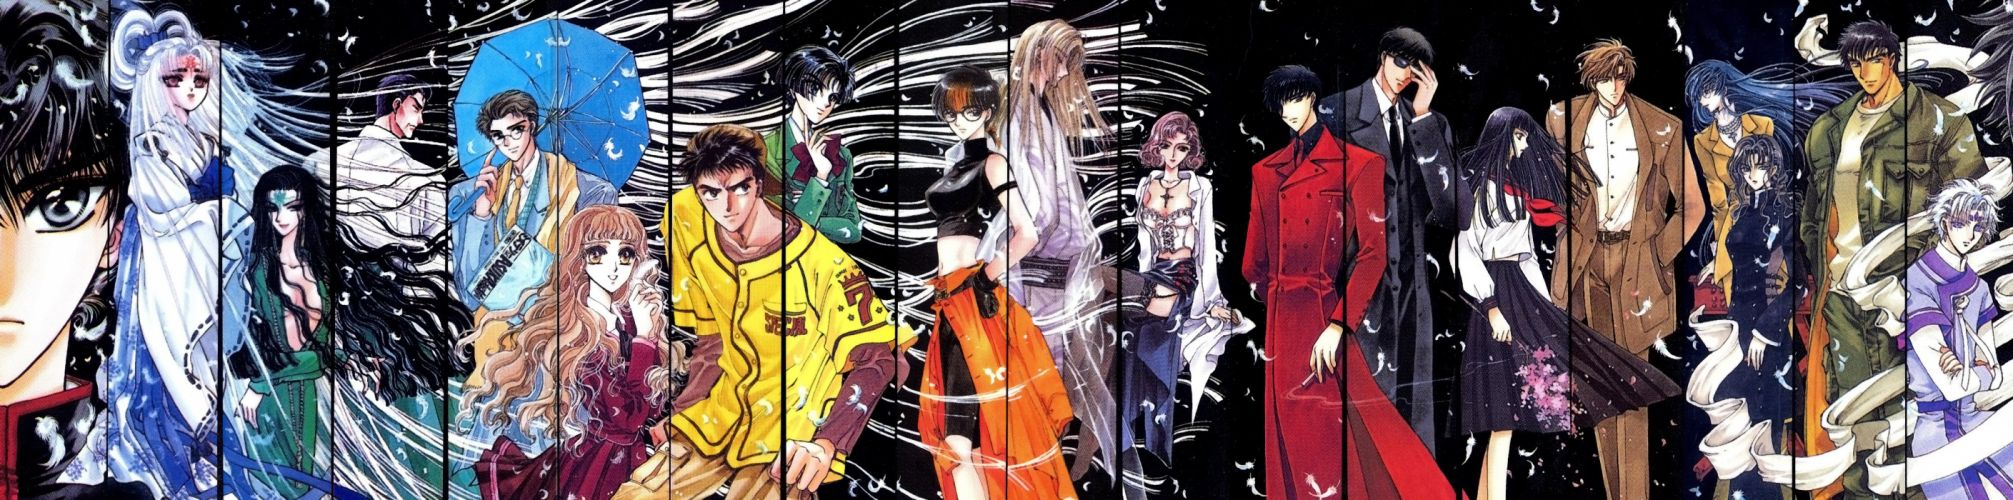 X anime girls guys Series Seiichirou Aoki Characters Kyogo Monou wallpaper